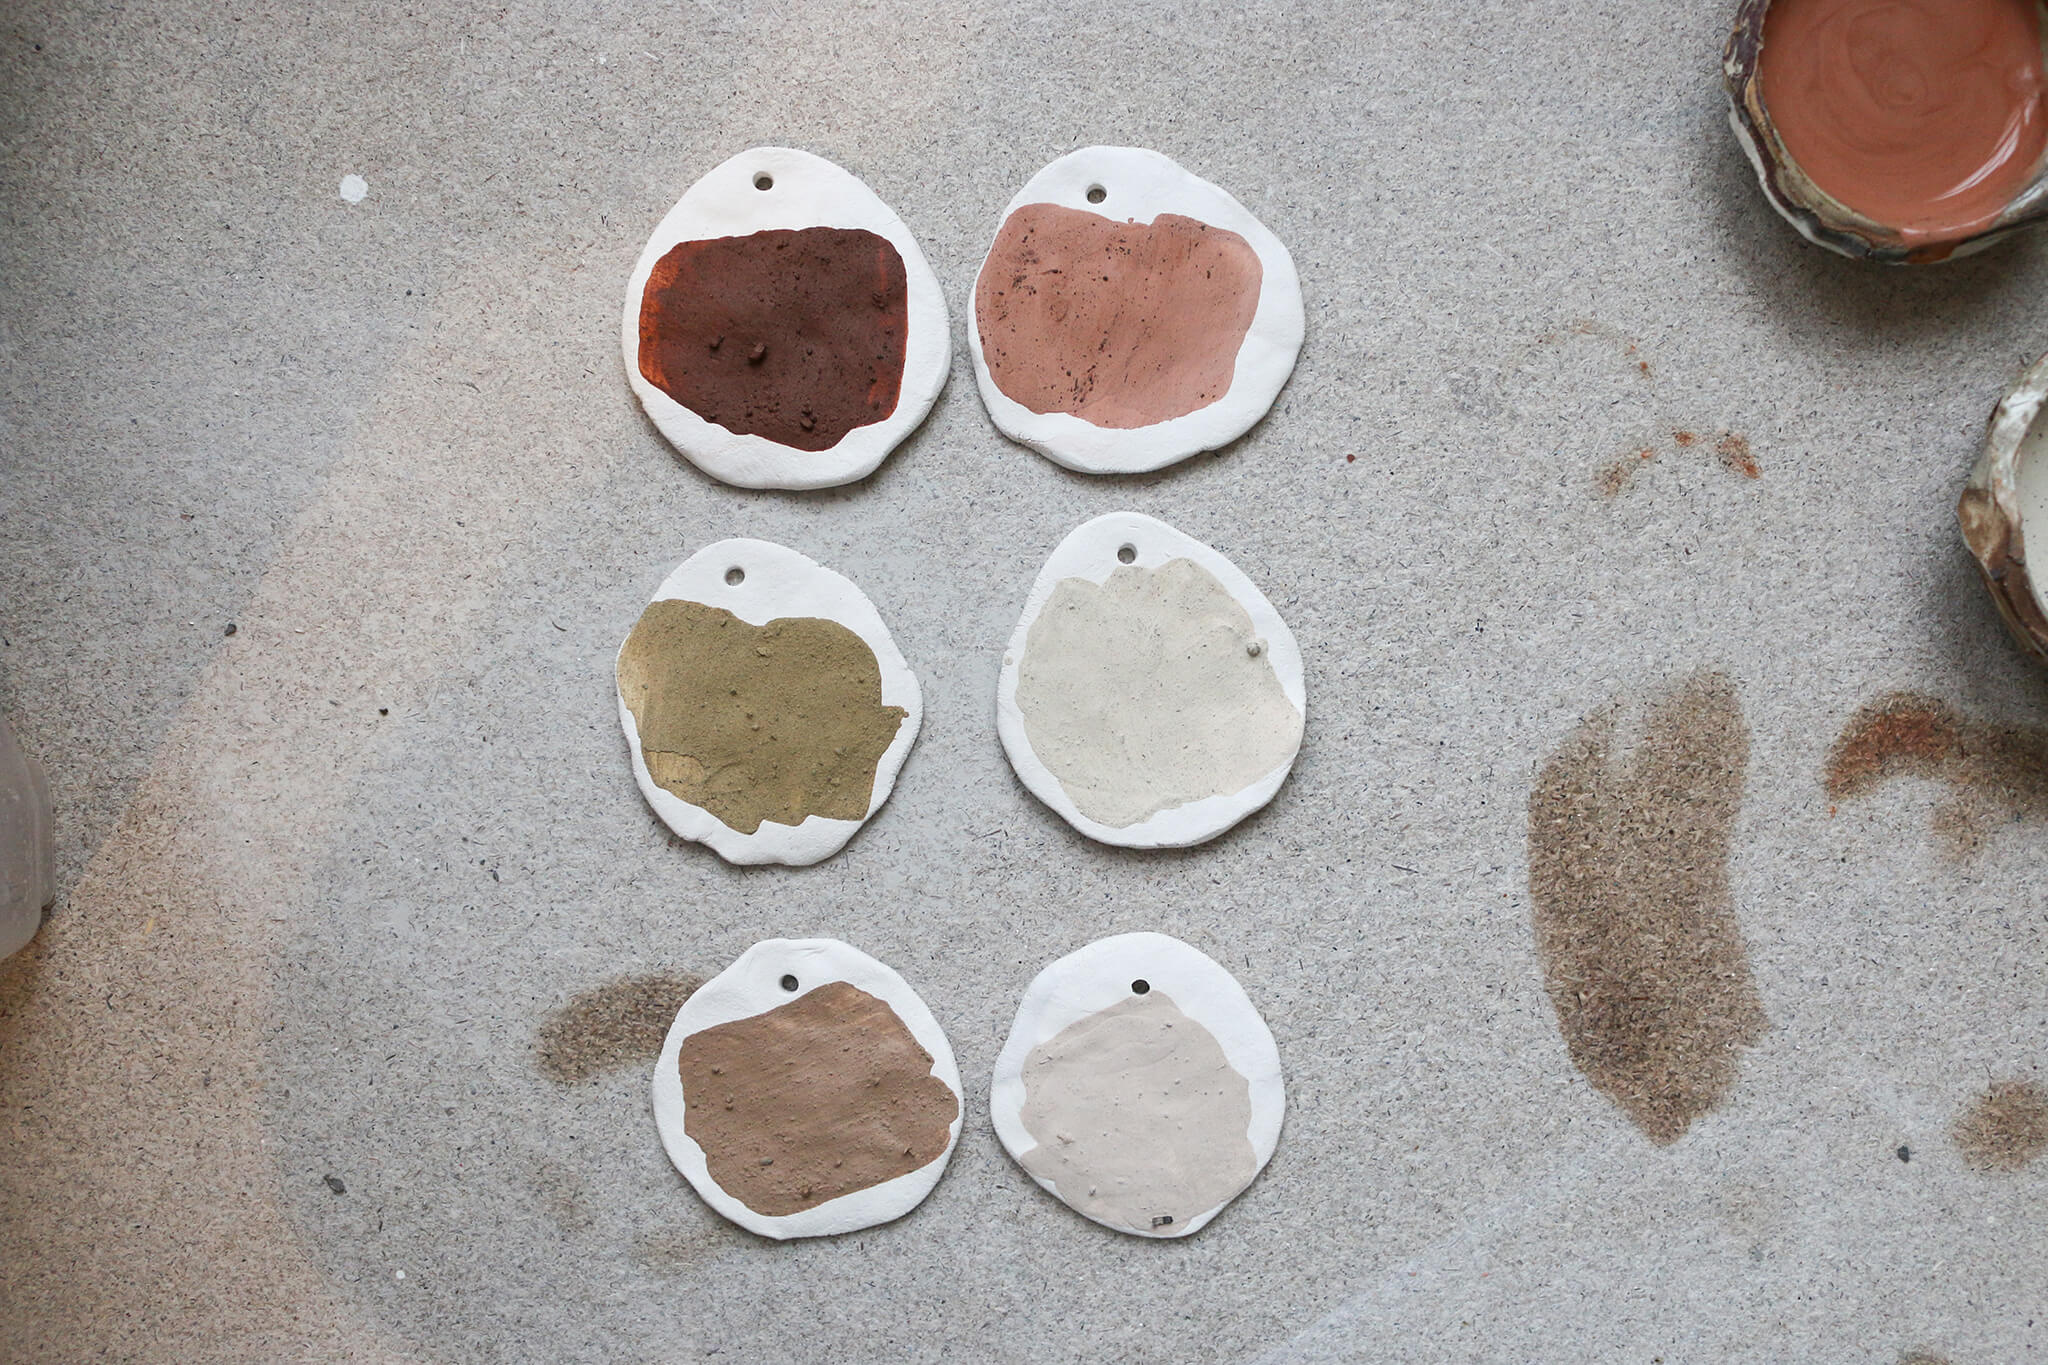 Testing colours on clay